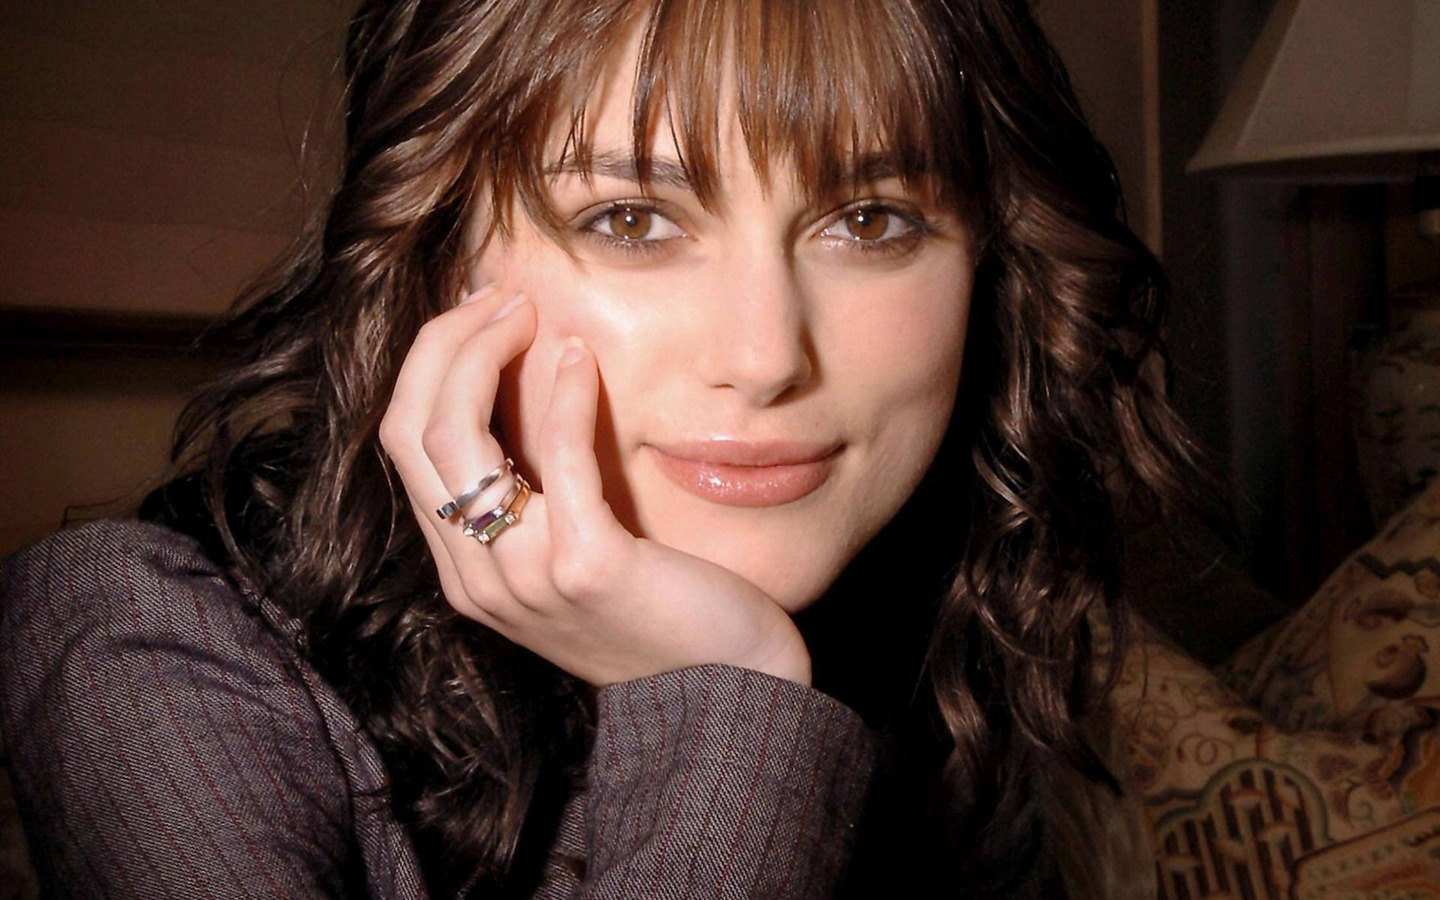 Keira Knightley #094 - 1440x900 Wallpapers Pictures Photos Images